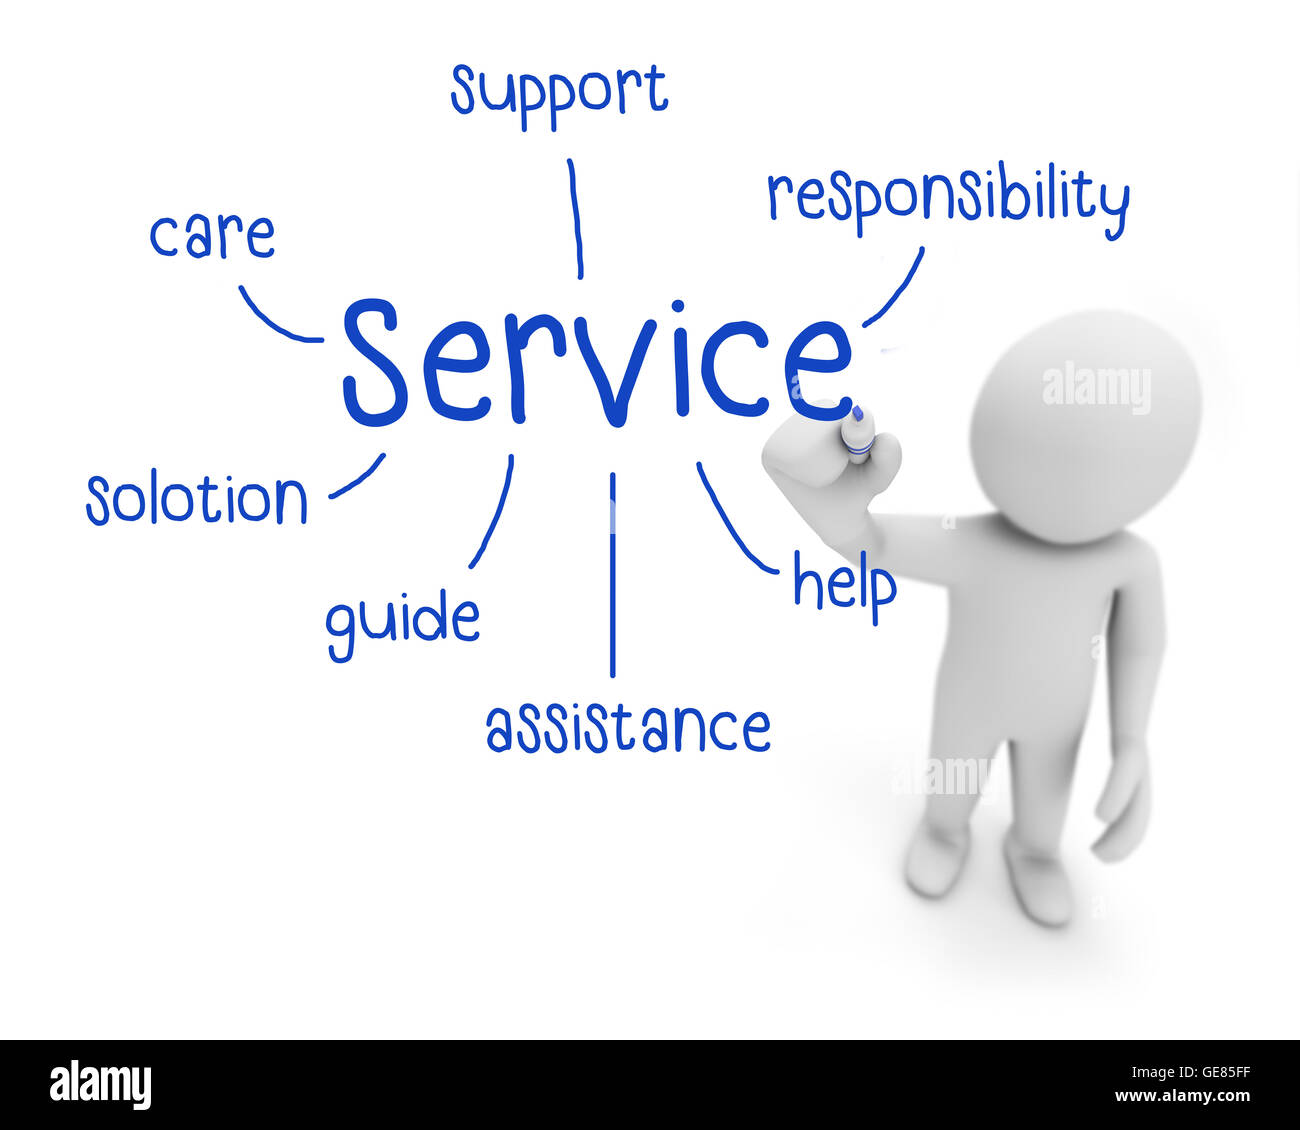 Support Solution Advice Help Care Stockfotos & Support Solution ...